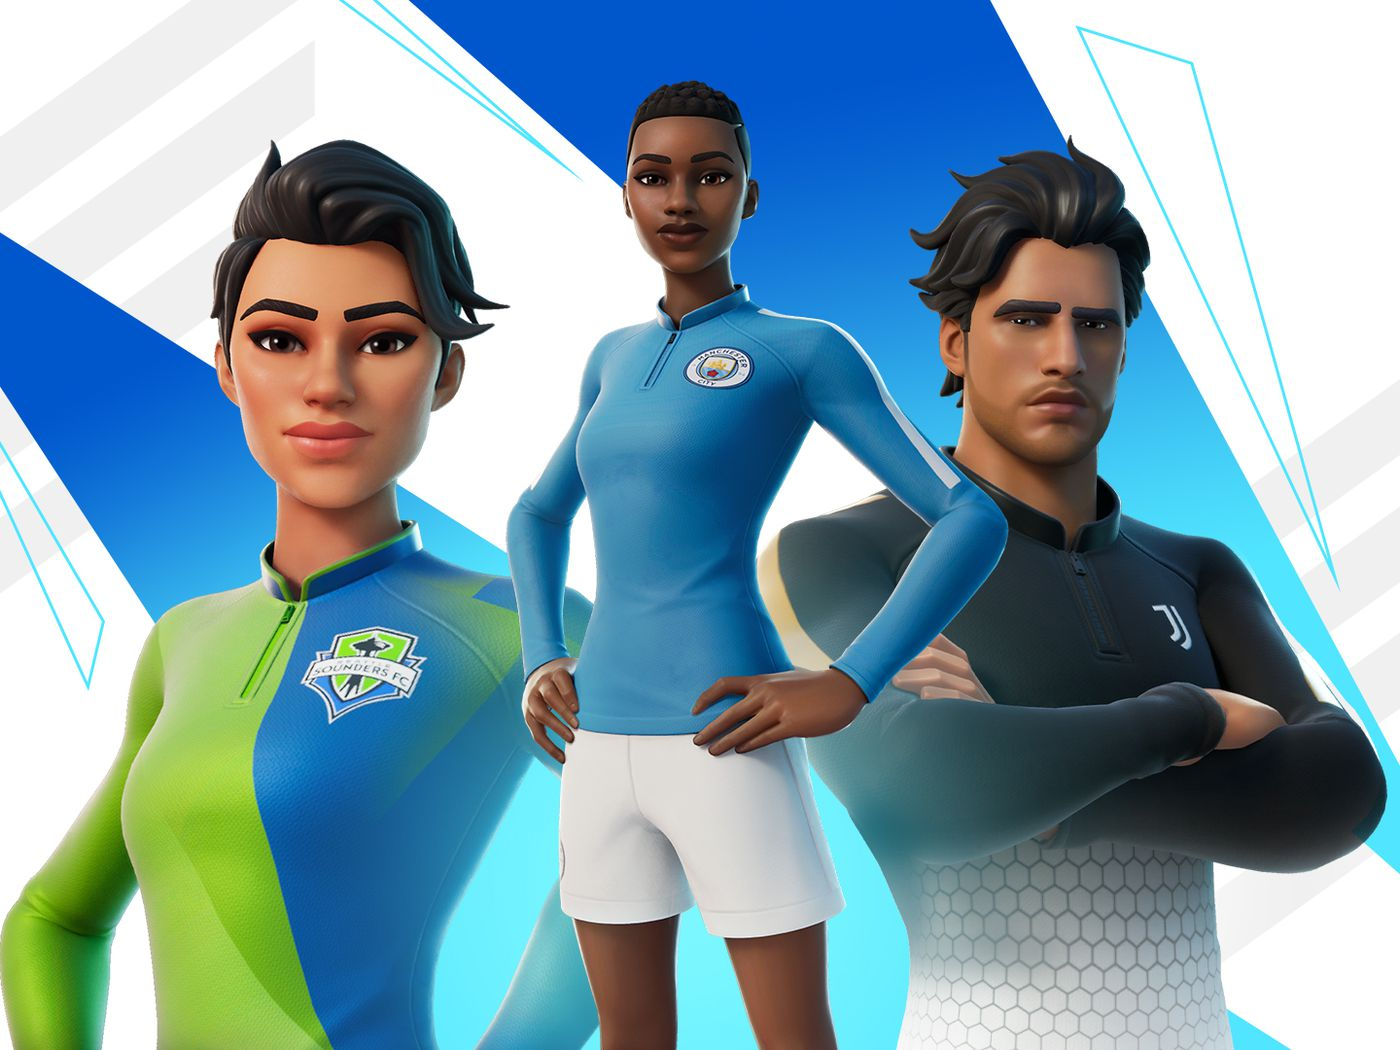 Cool Fortnite Soccer Skin Backgrounds Fortnite S New Soccer Skins Feature Big Teams Like Manchester City And Juventus The Verge